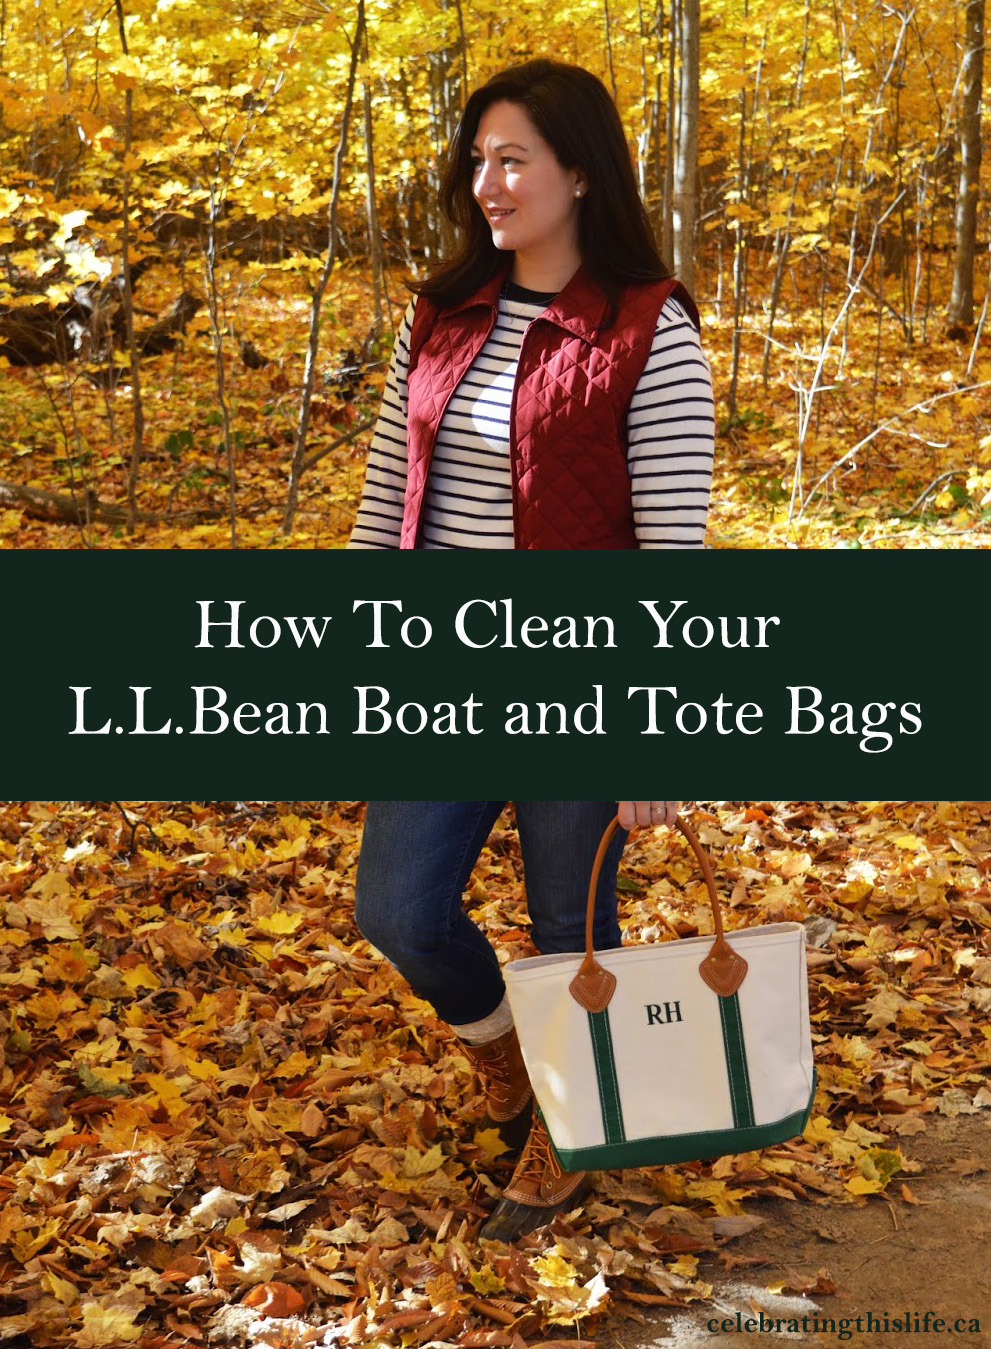 How To Clean Your L.L.Bean Boat and Tote Bags